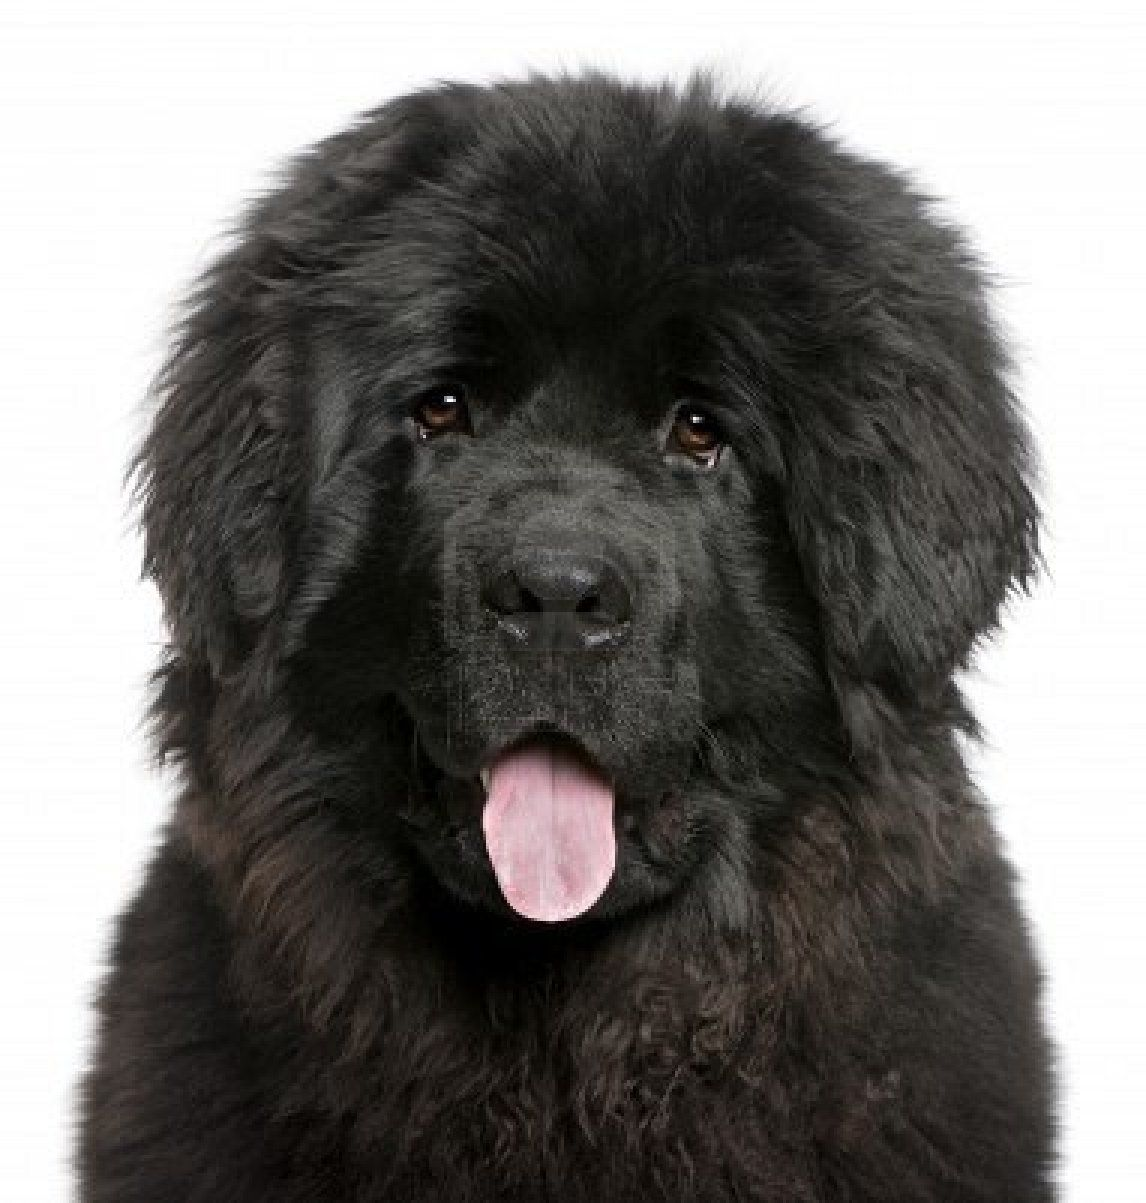 newfoundland puppy probably our next dog ) in a few